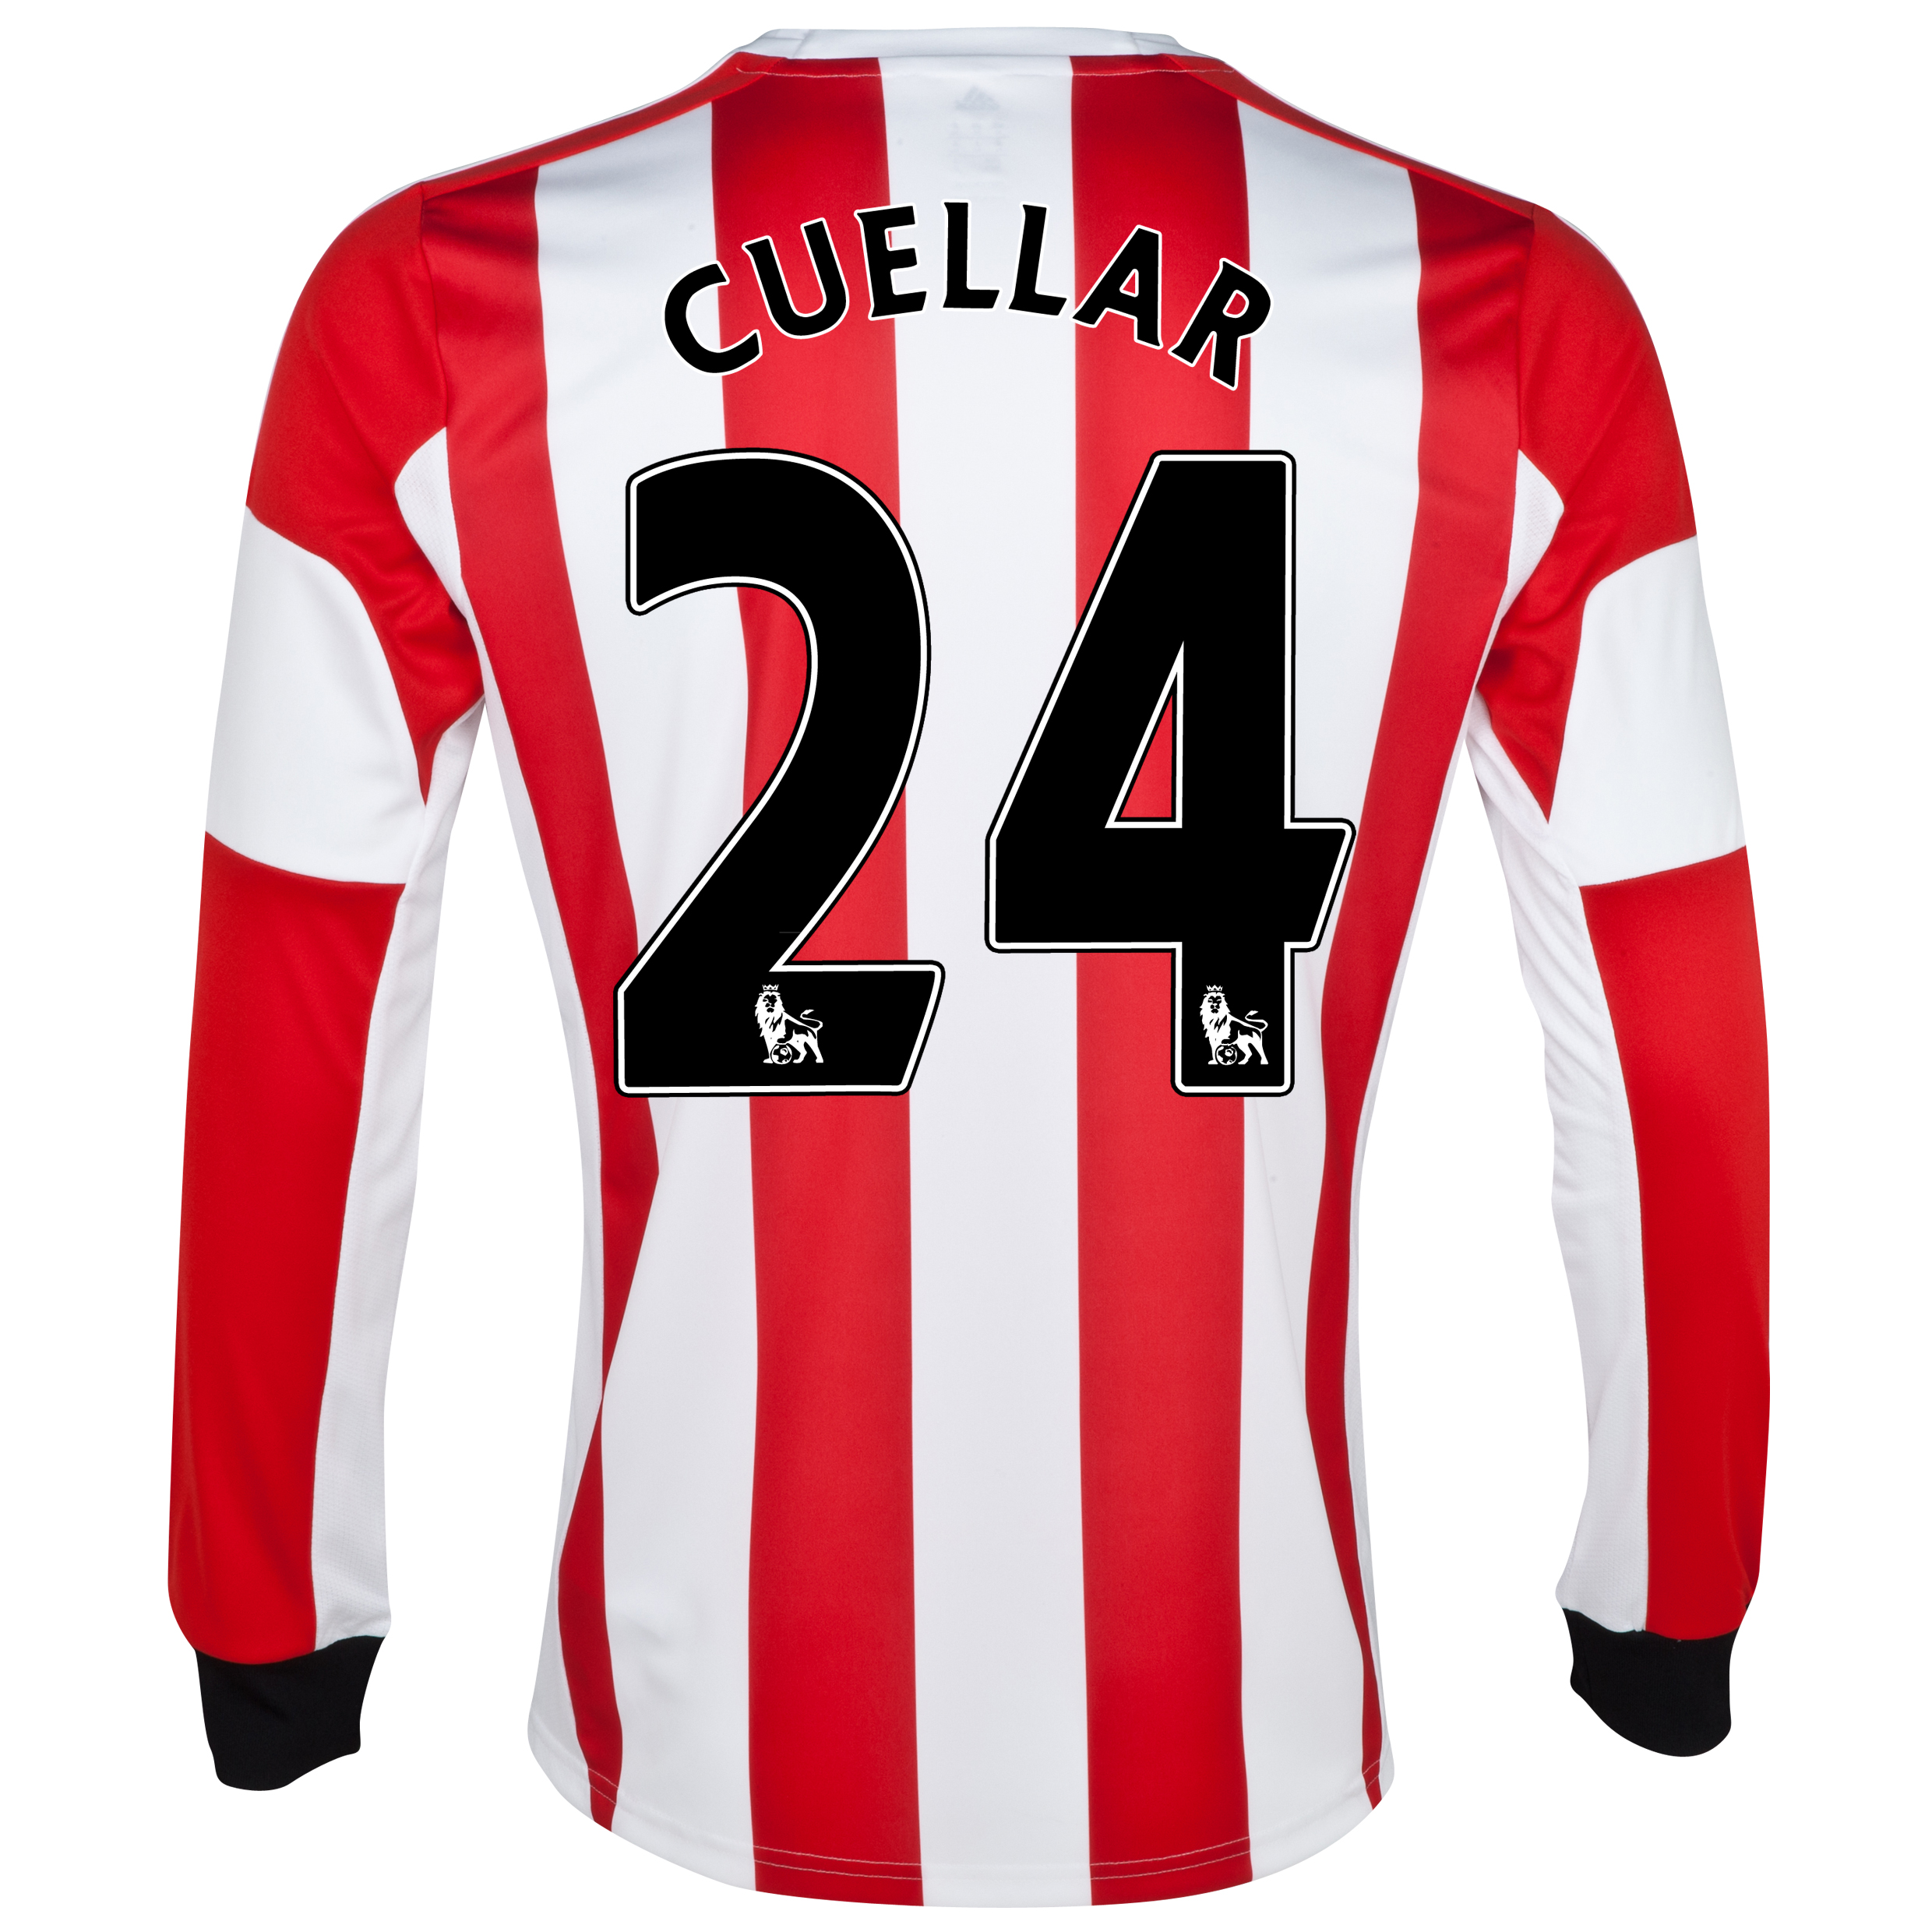 Sunderland Home Shirt 2013/14 - Long Sleeved - Junior with Cuellar 24 printing